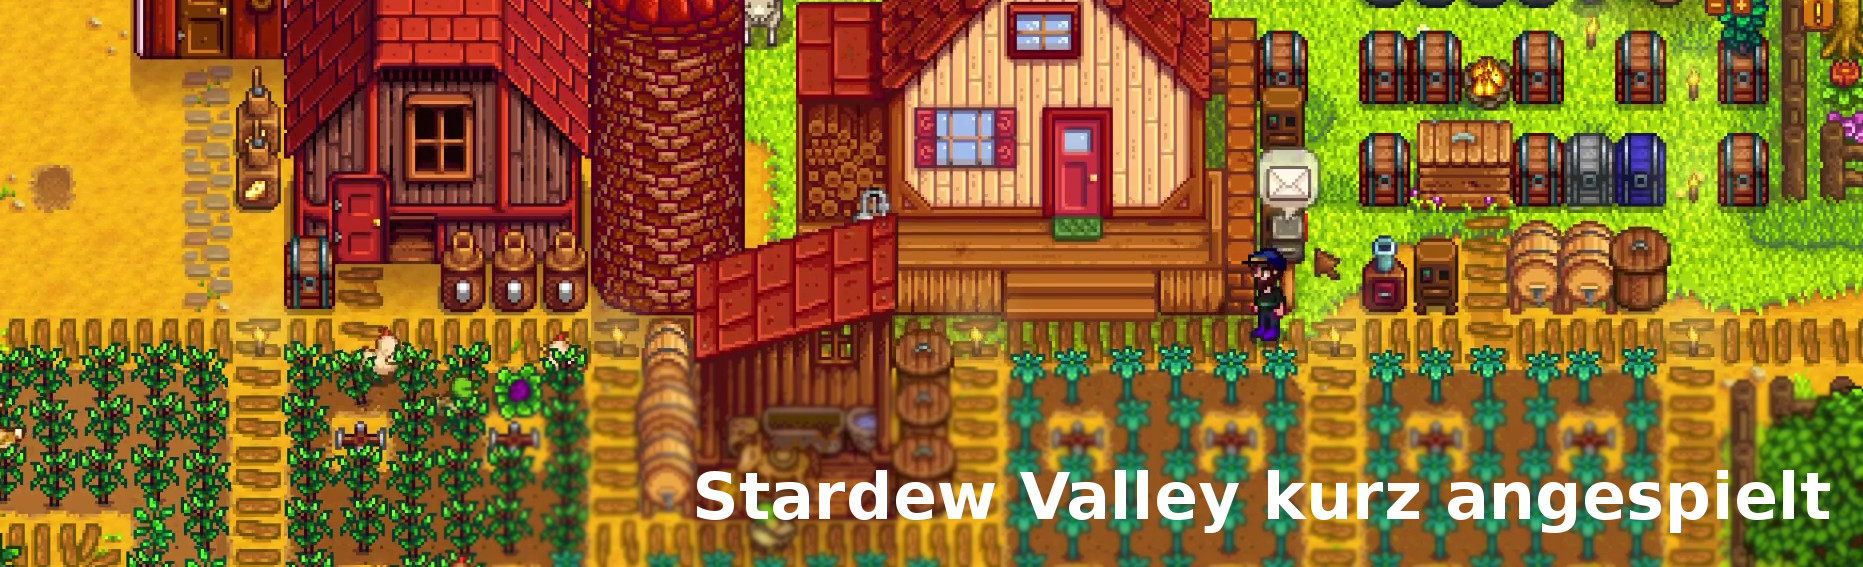 https://www.holarse-linuxgaming.de/sites/default/files/2017-02-05-1/stardew_valley_ka_teaser.jpg